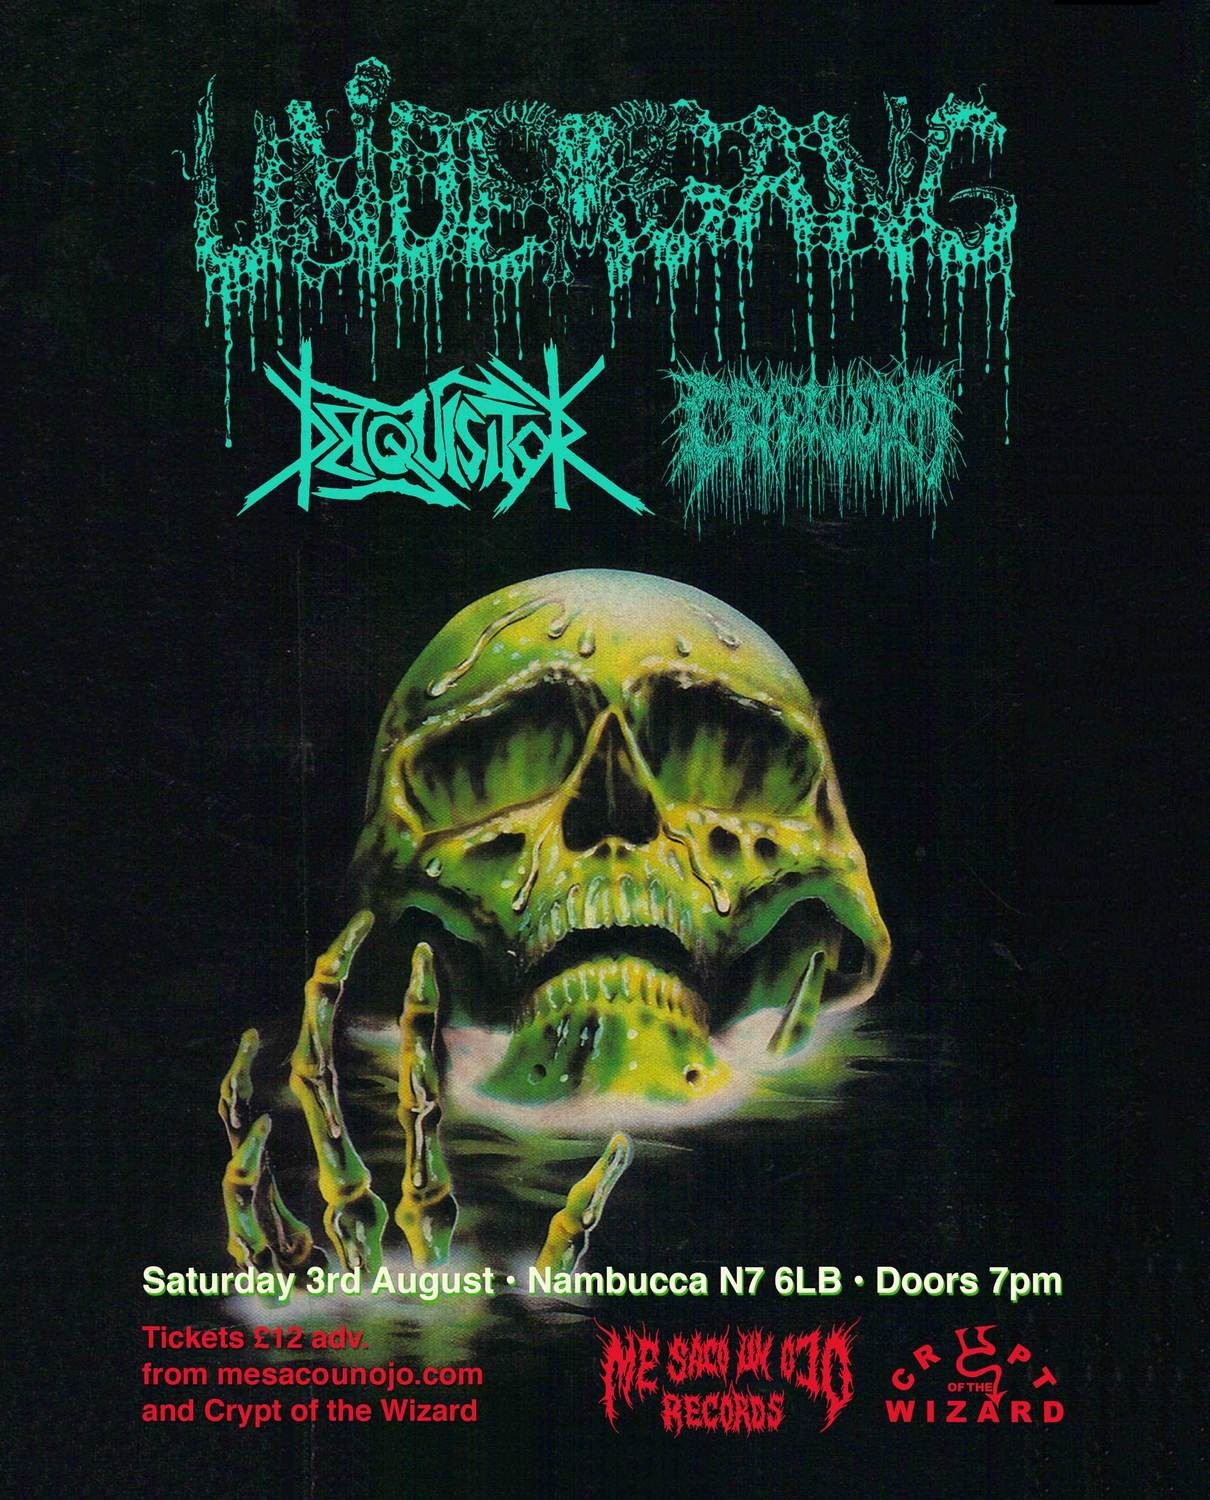 Undergang, Deiquisitor & Cryptworm - London Ticket - Nambucca - Saturday 3rd August 2019